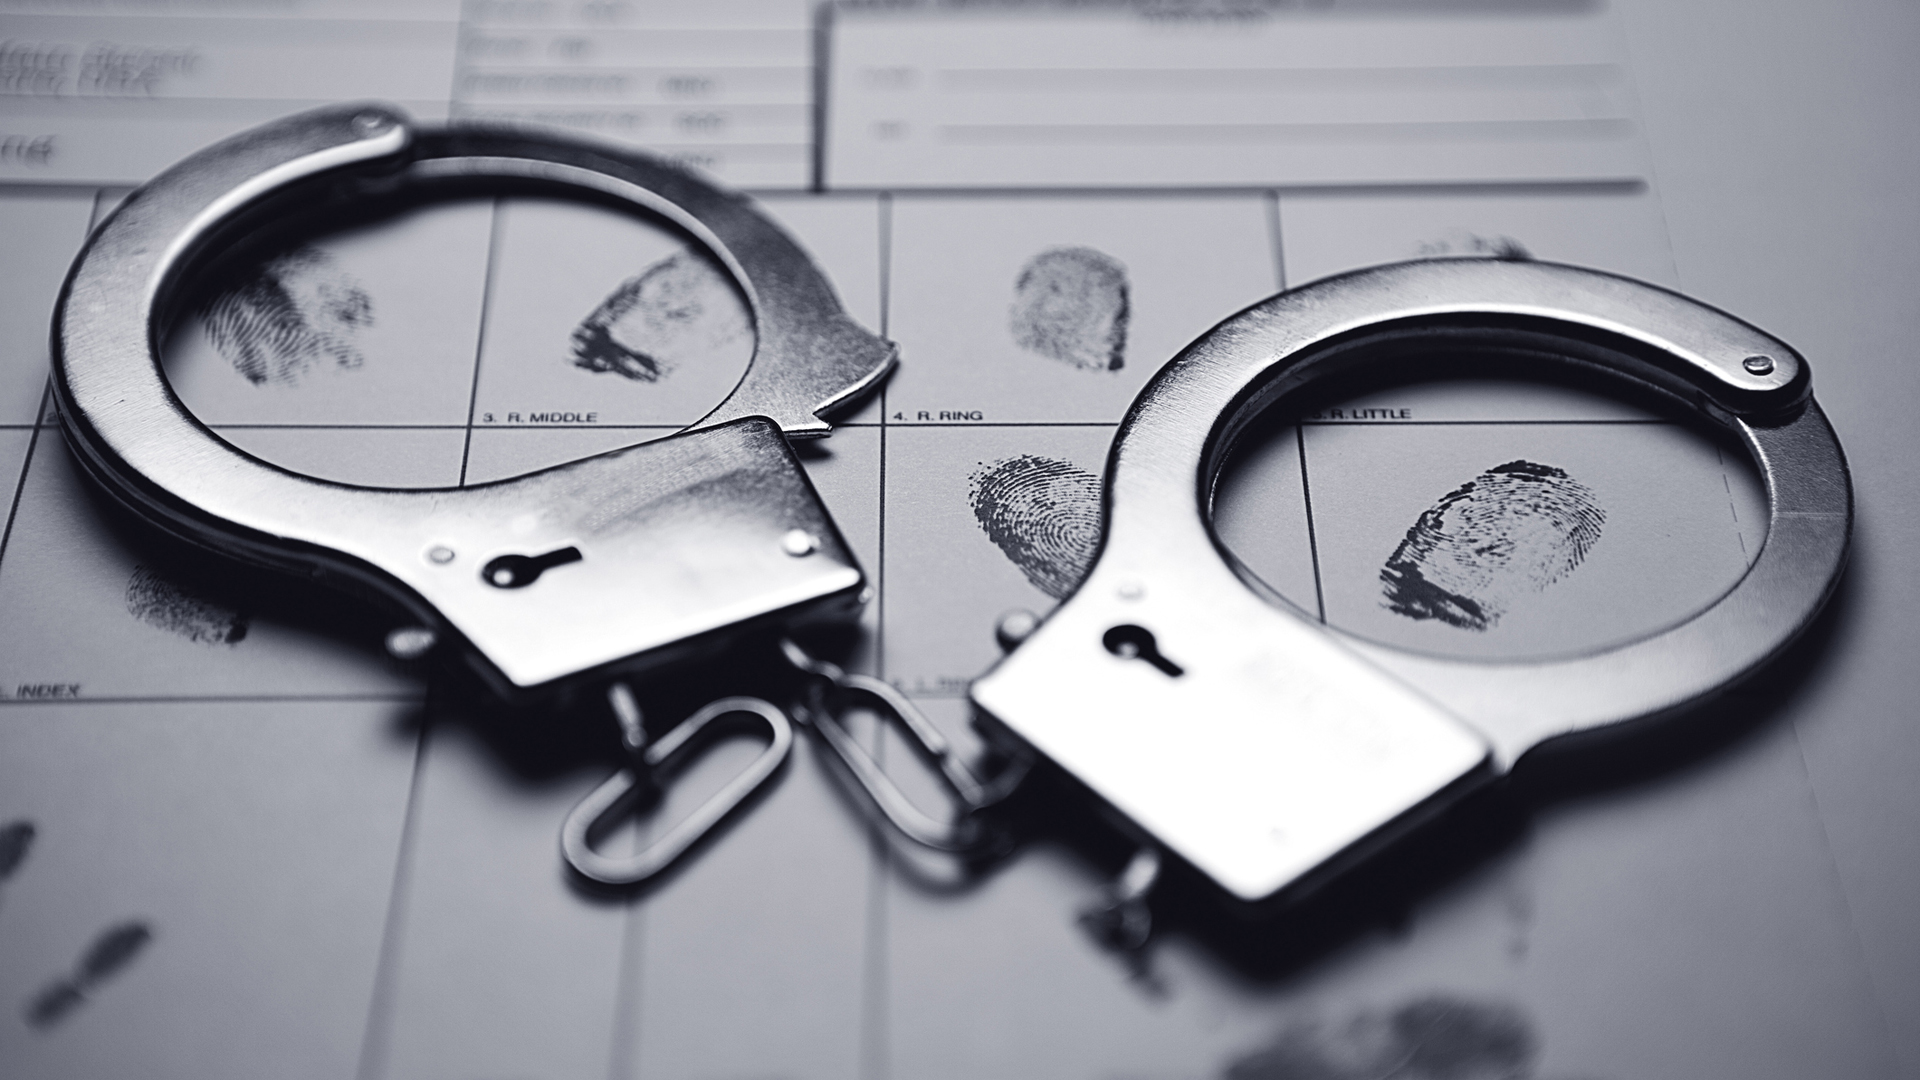 Handcuffs on top of a fingerprint form are shown in this file photo. (Credit: Blake David Taylor/Thinkstock)